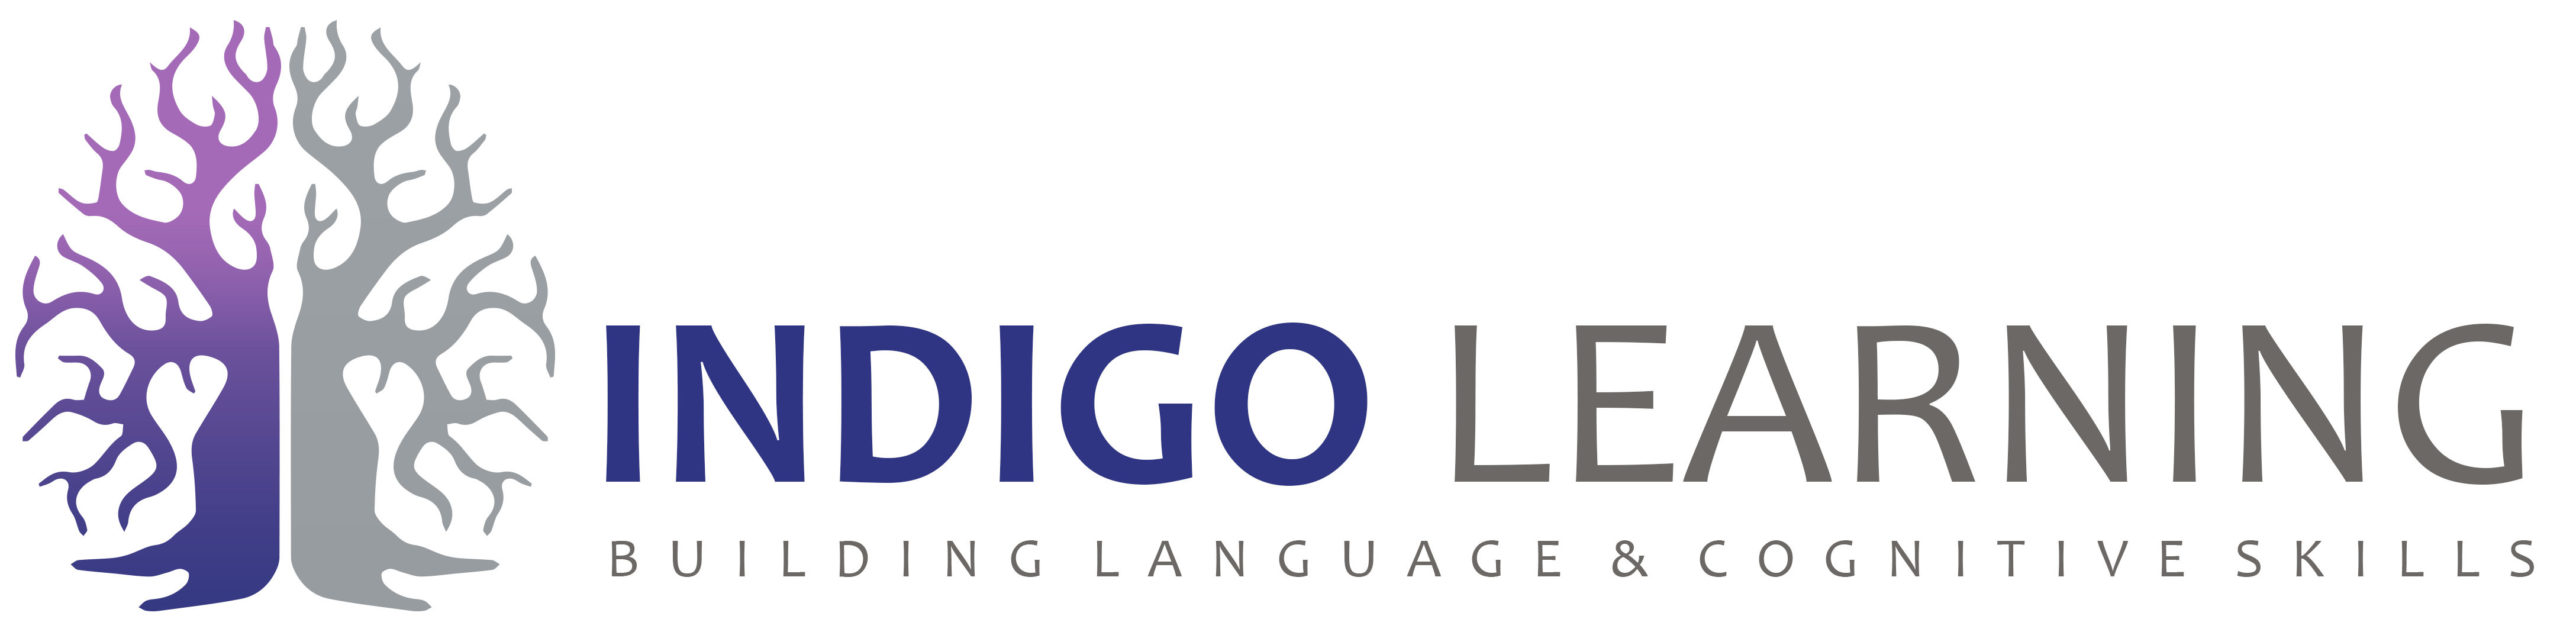 INDIGO LEARNING